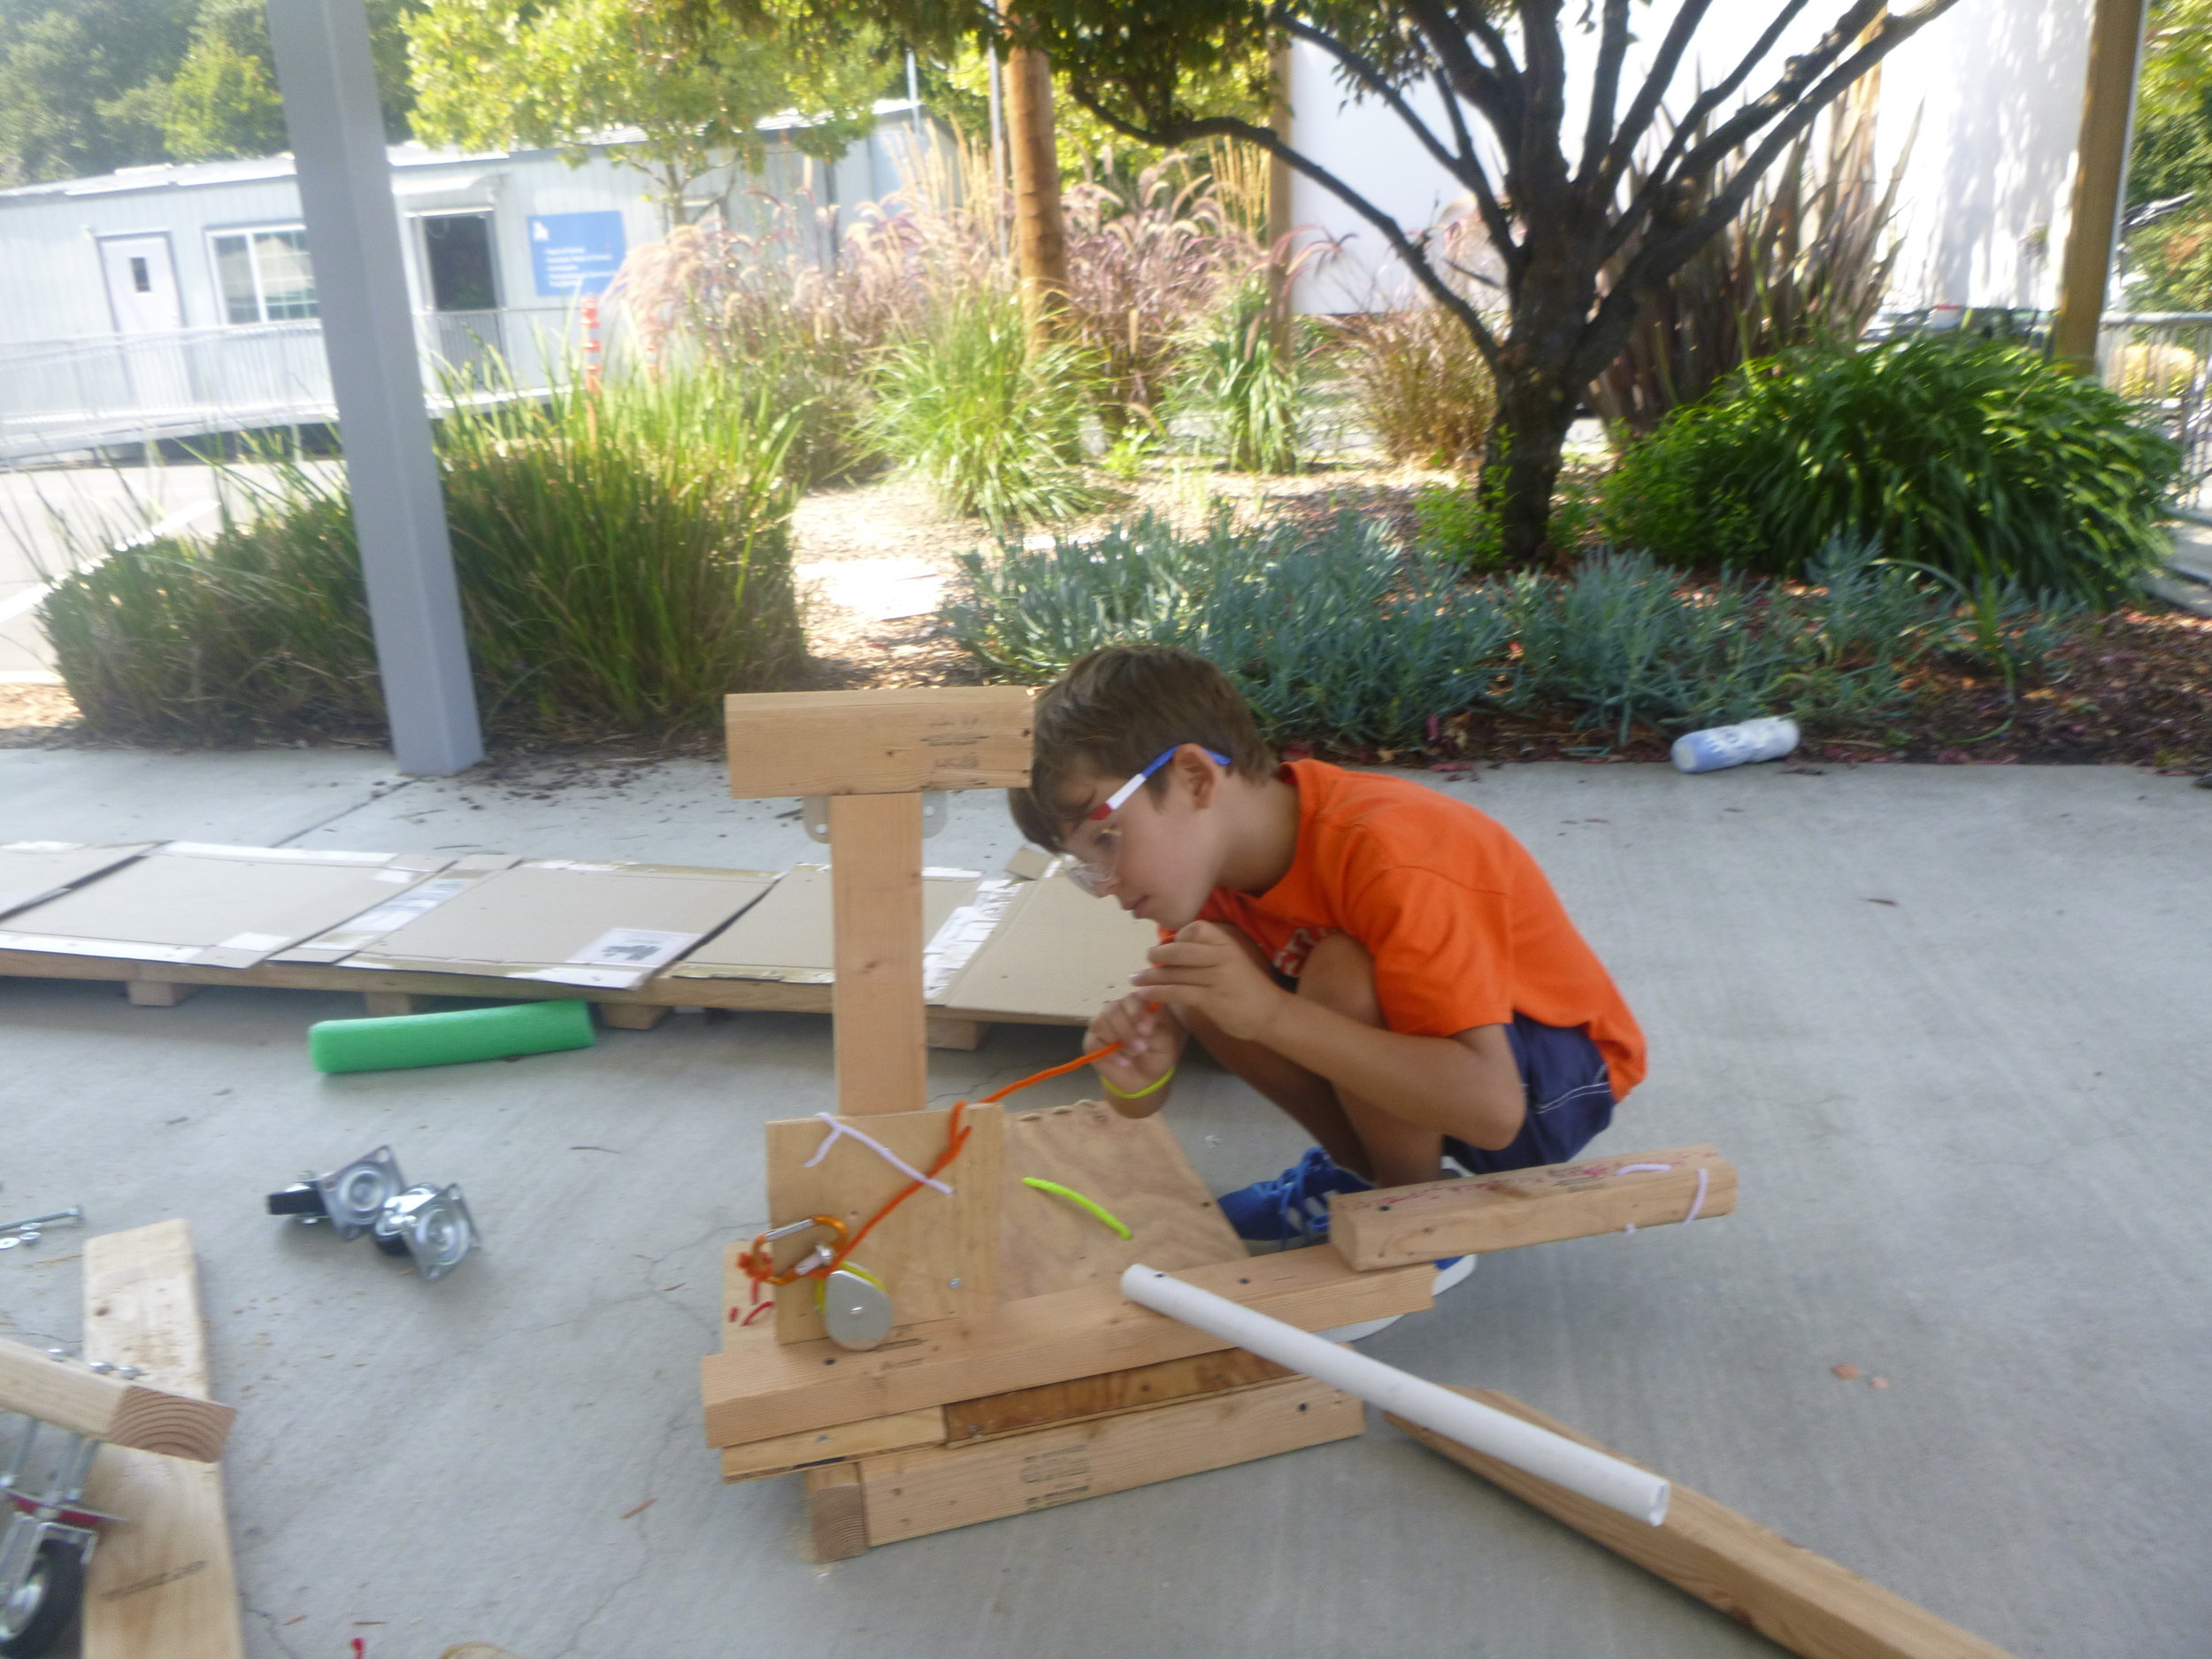 Julian builds a claw device for picking up geological samples on the surface of mars.